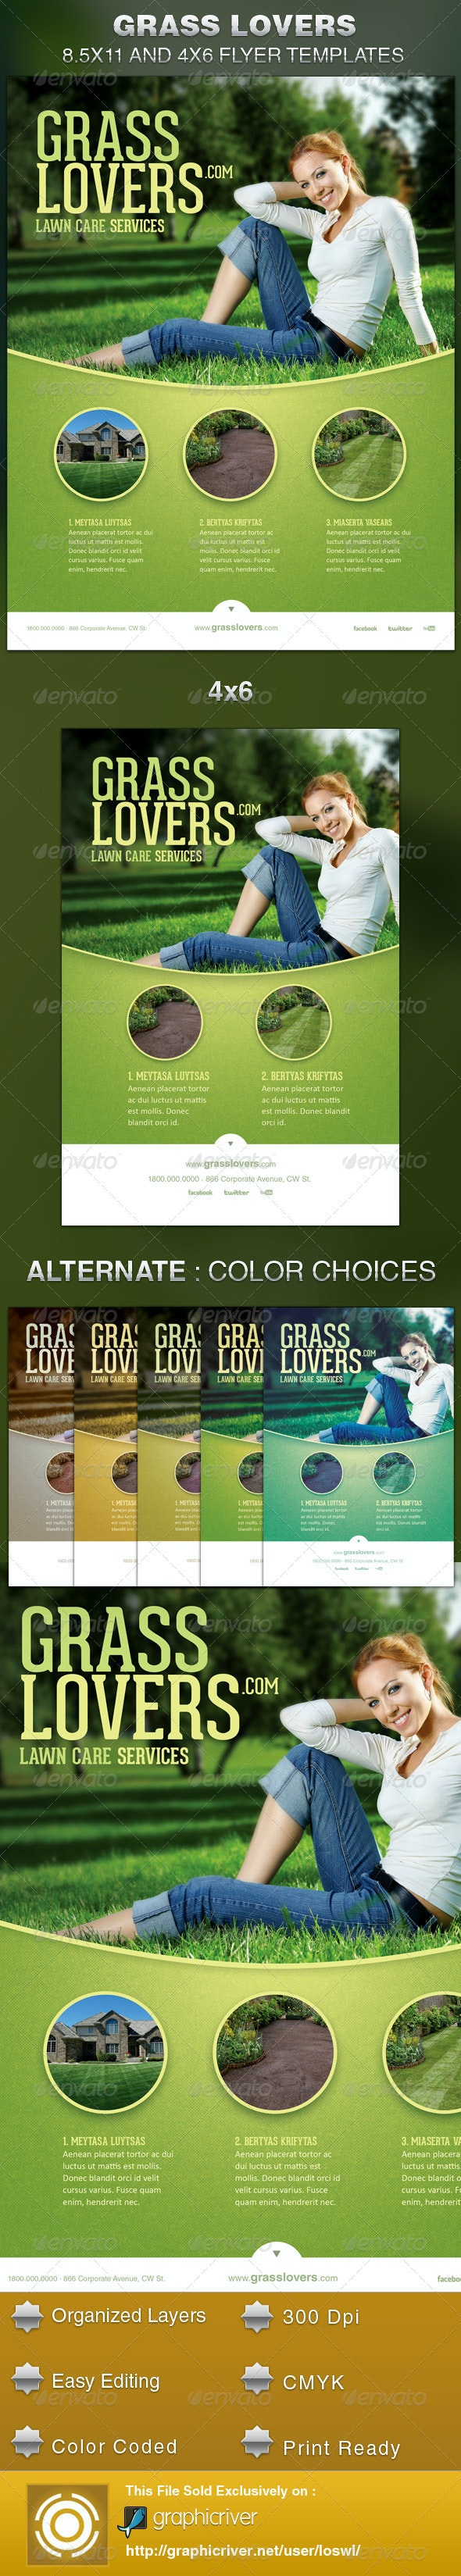 Grass Lovers Corporate Flyer Template - Corporate Flyers